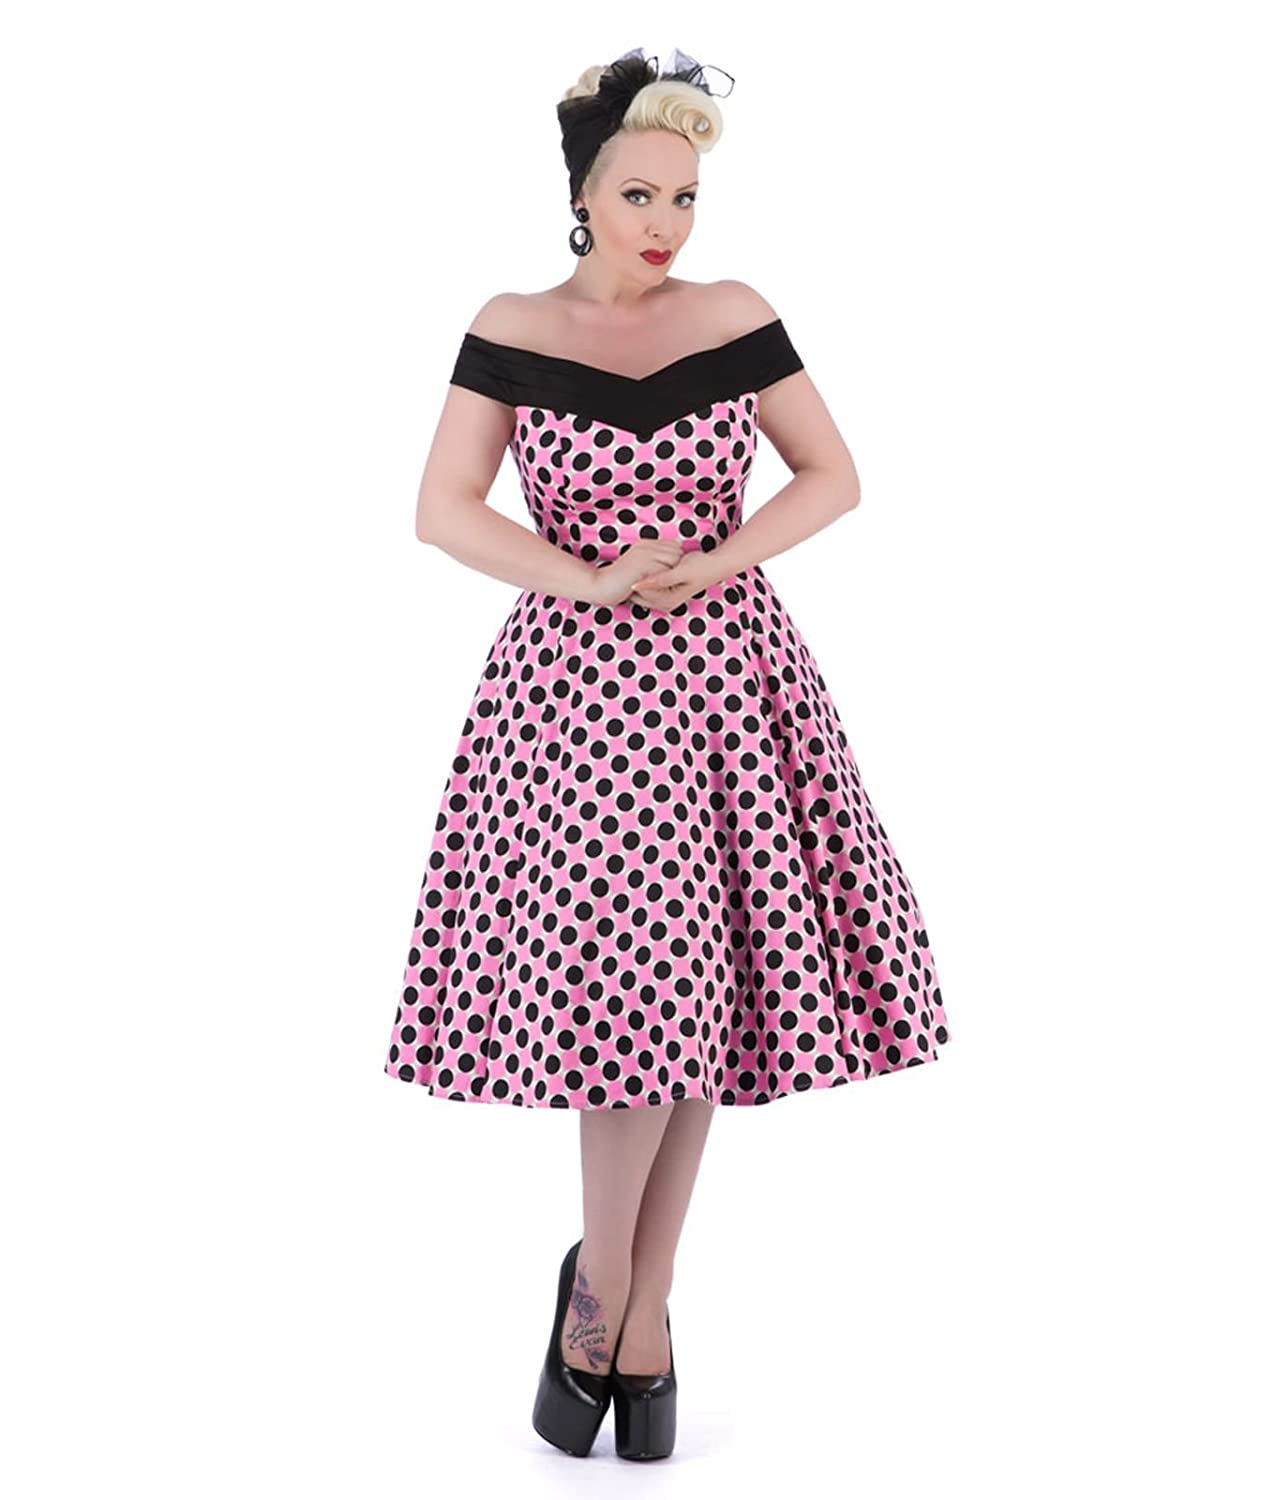 Tiger Milly H R London 50 S Black Pink Polka Dot Dress